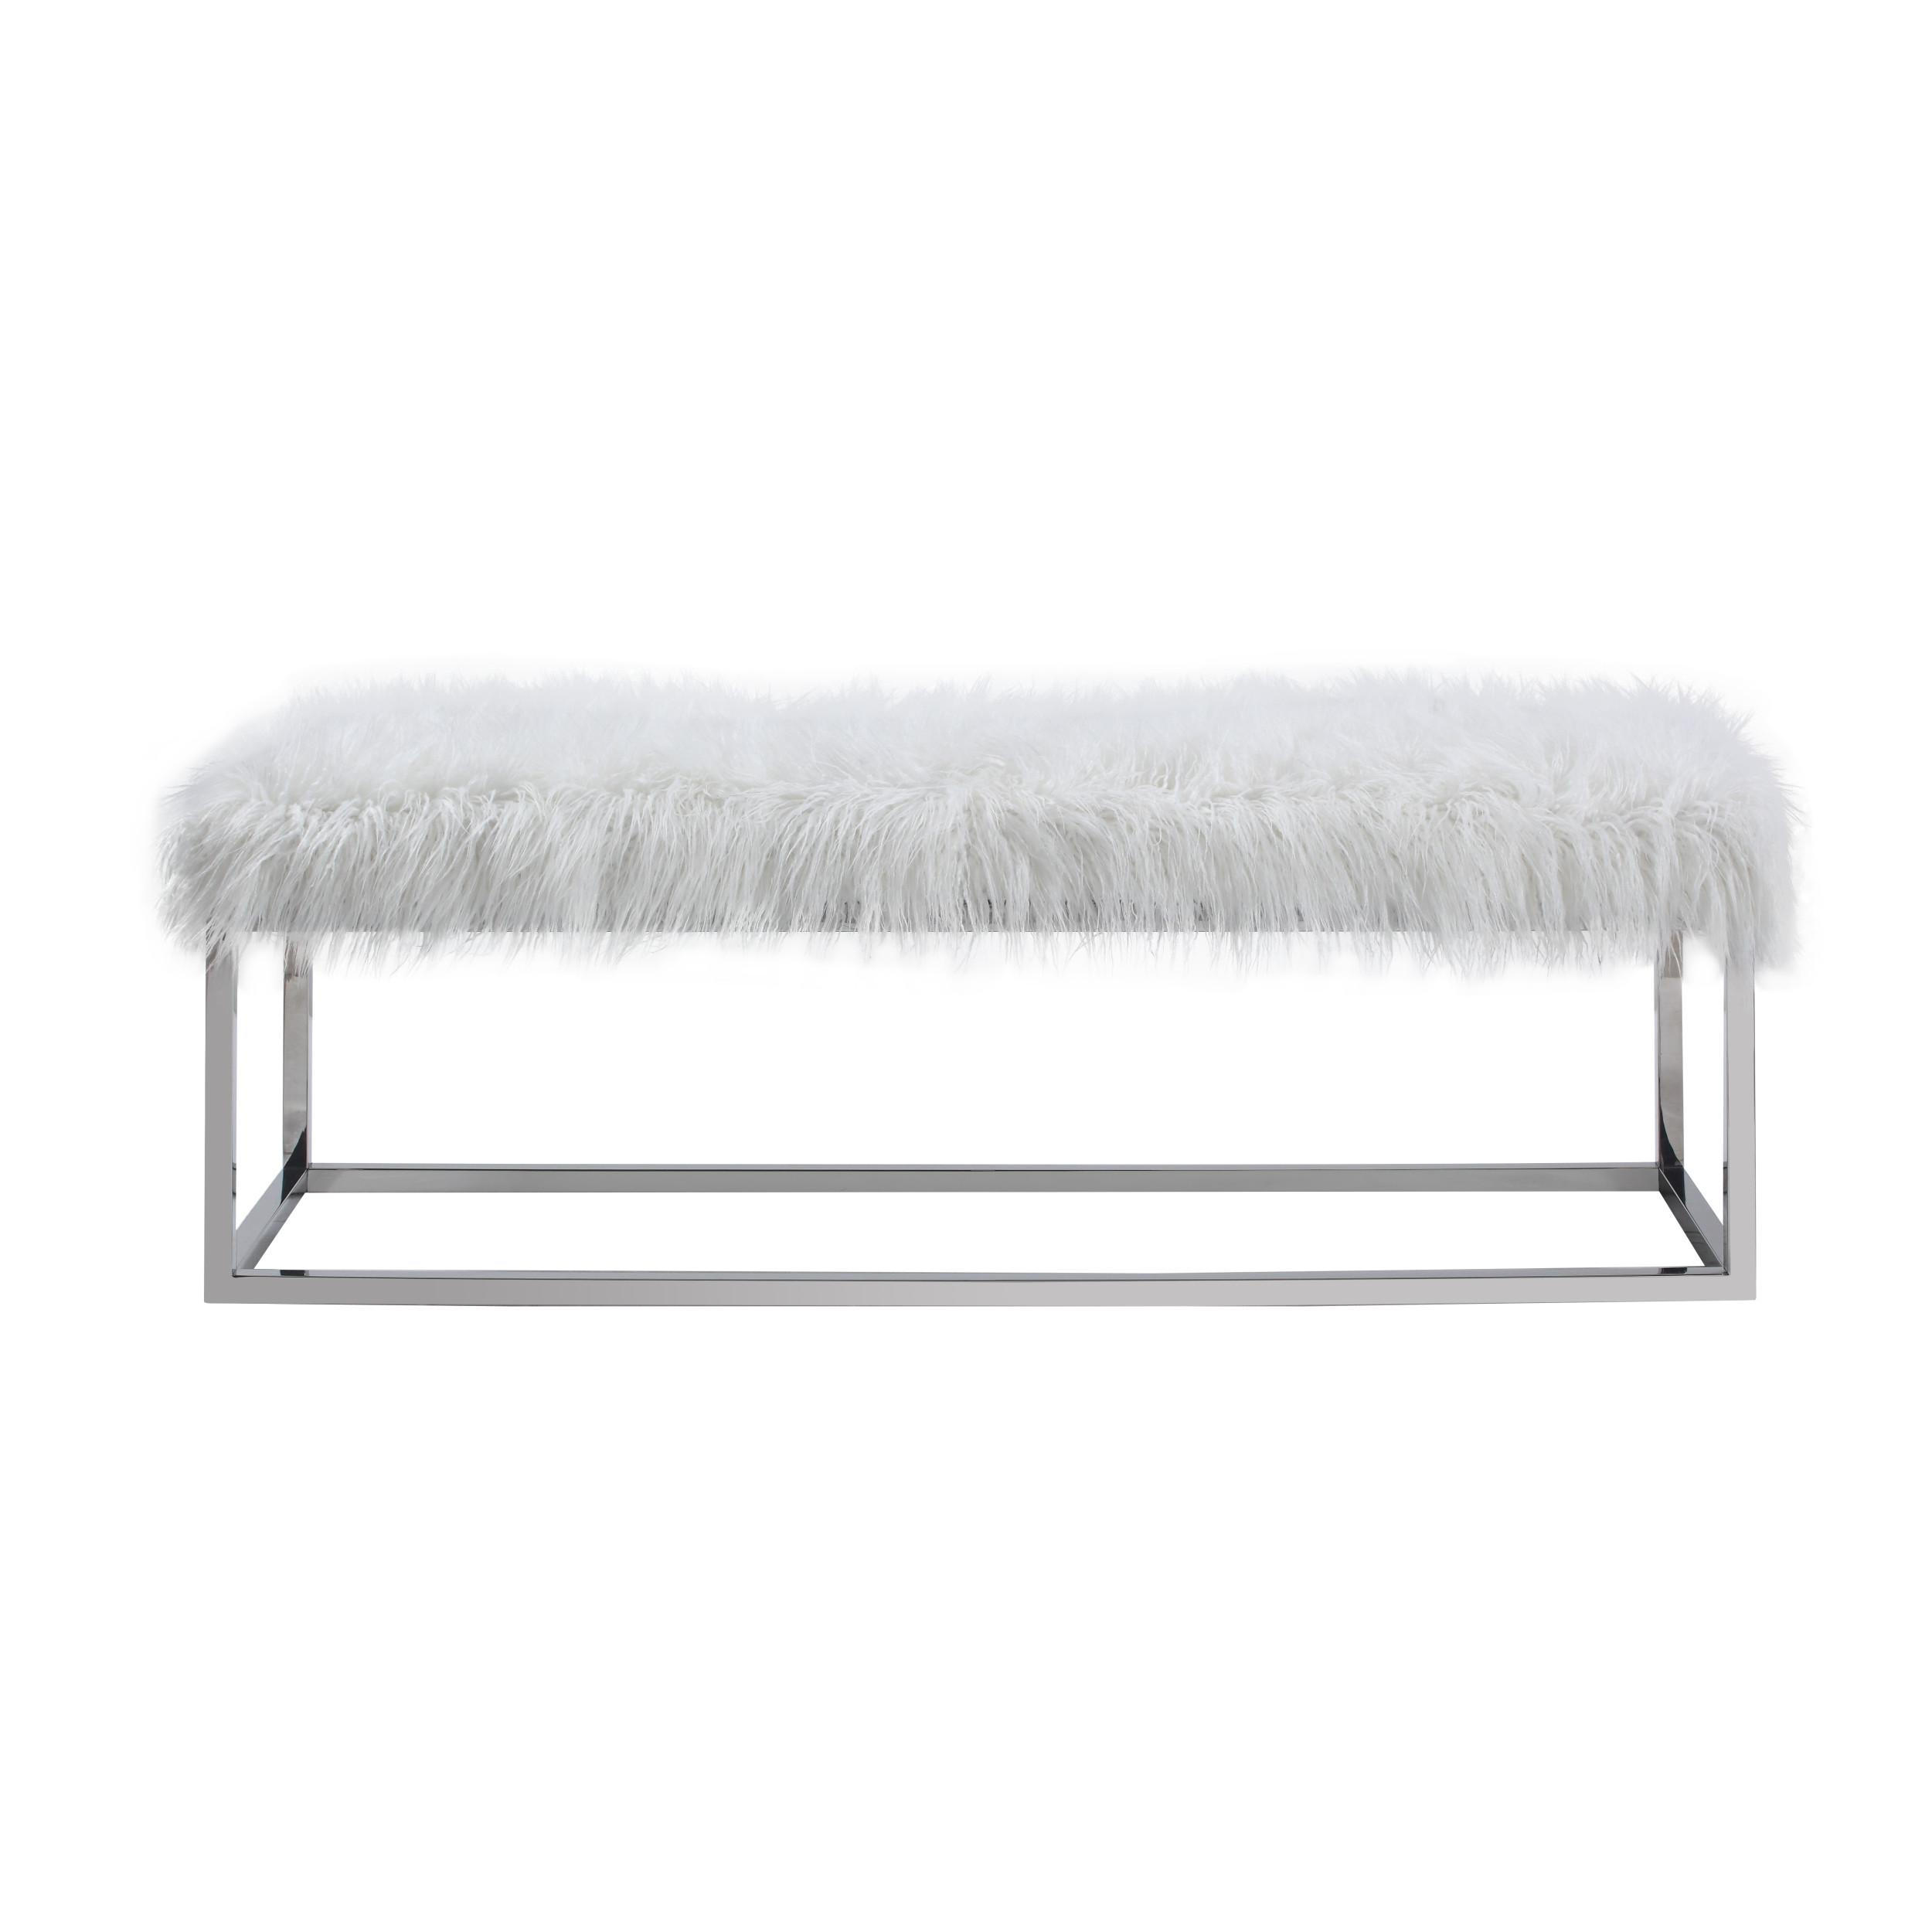 Emerald Home Diva Snow White Fabric Upholstered Bench The Classy Home